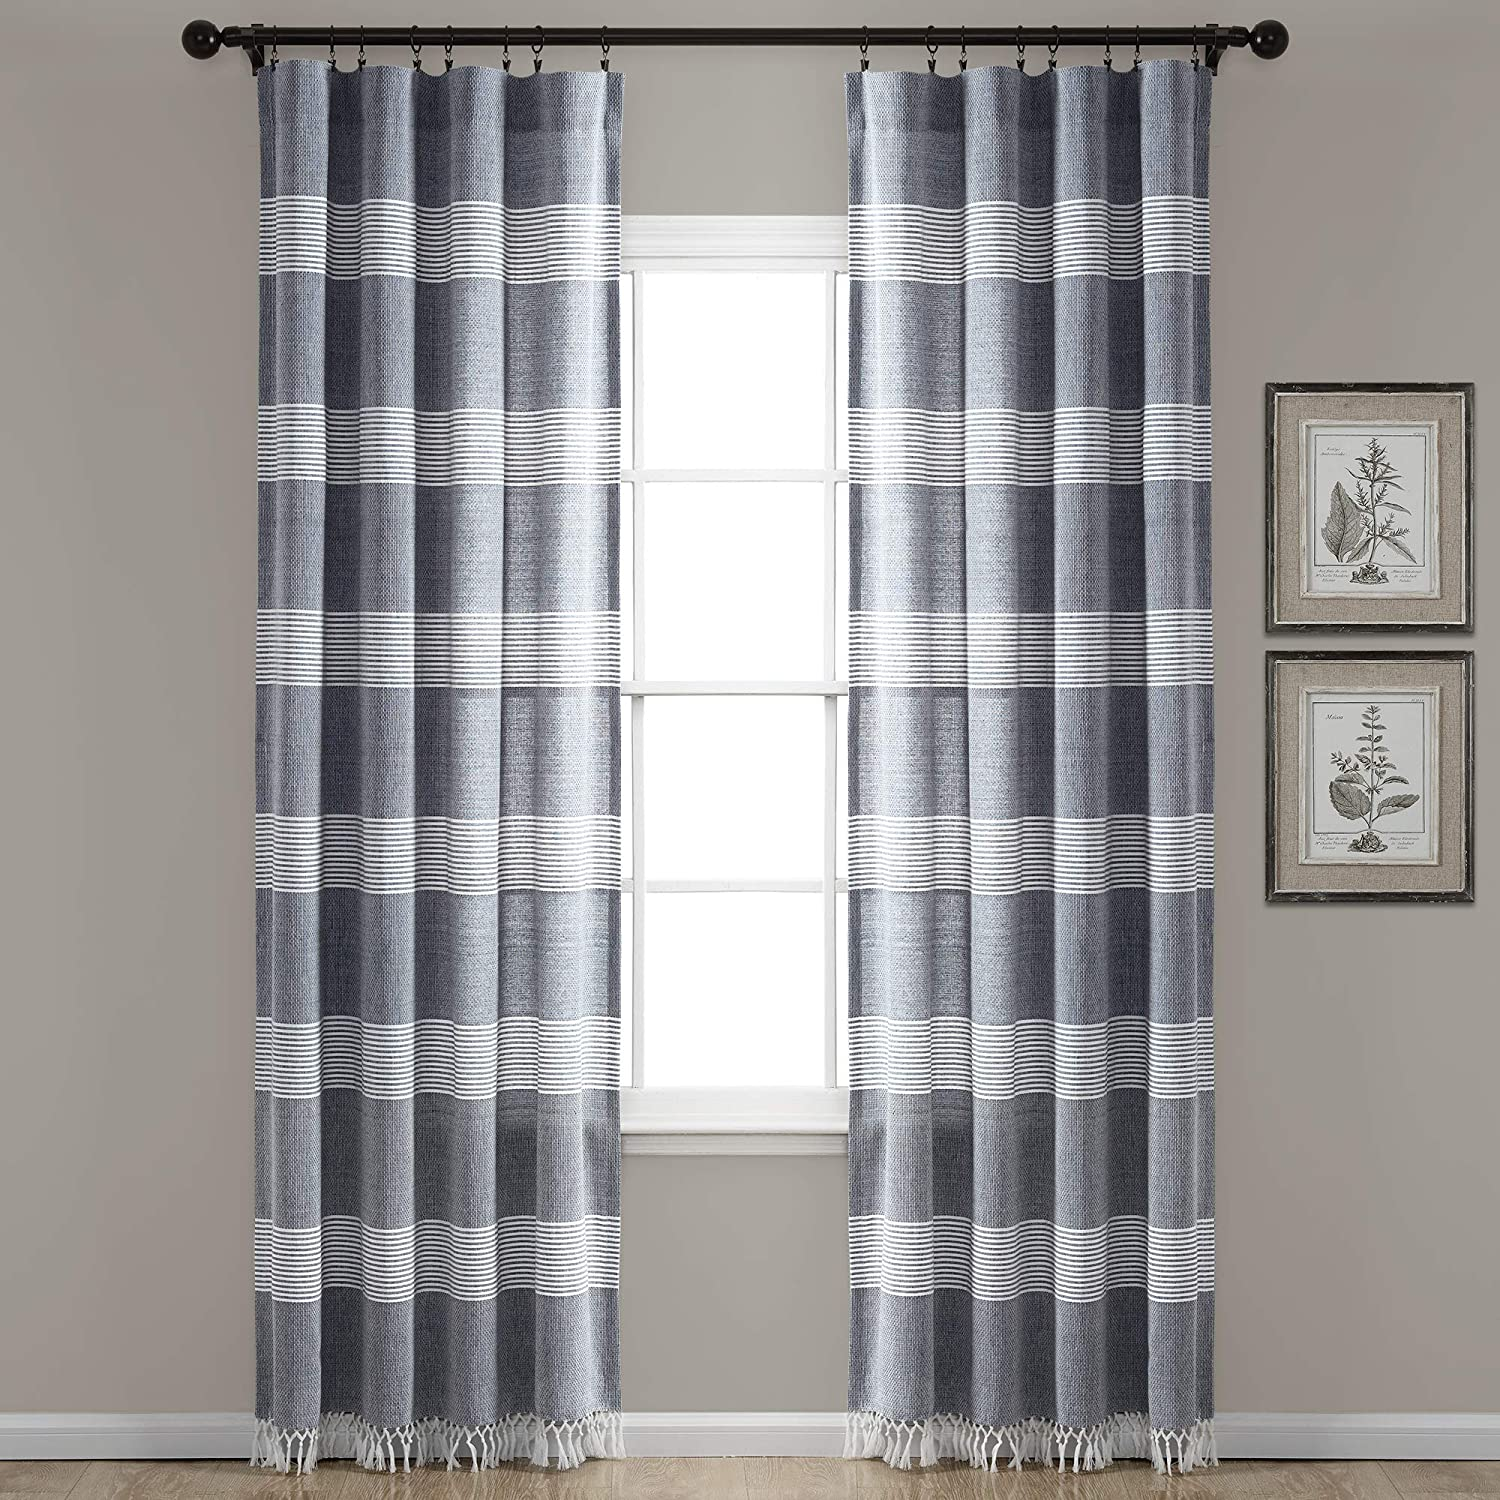 "Lush Decor, Navy Tucker Stripe Yarn Dyed Cotton Knotted Tassel Window Curtain Panel Pair, 84"" x 40"""